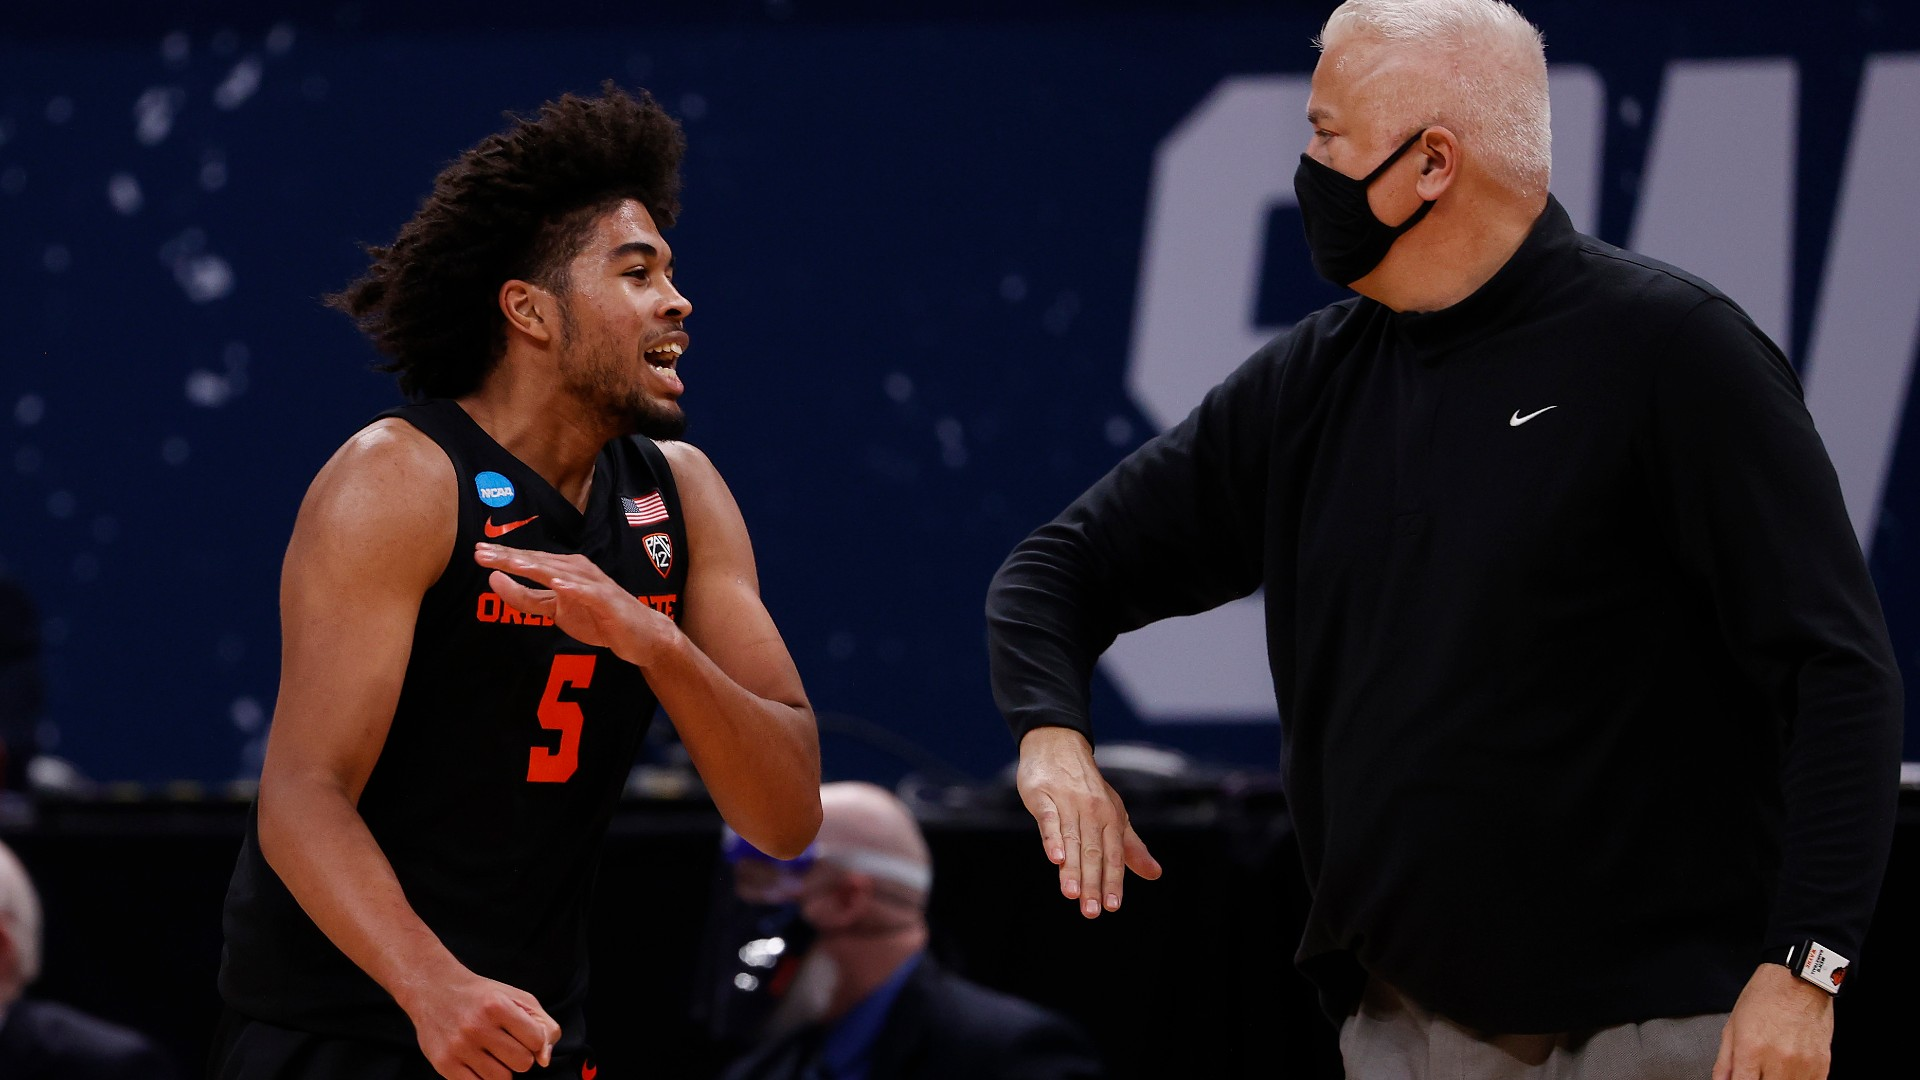 Oregon State's Wayne Tinkle keeps Beavers in the zone, extends team's run into Elite Eight